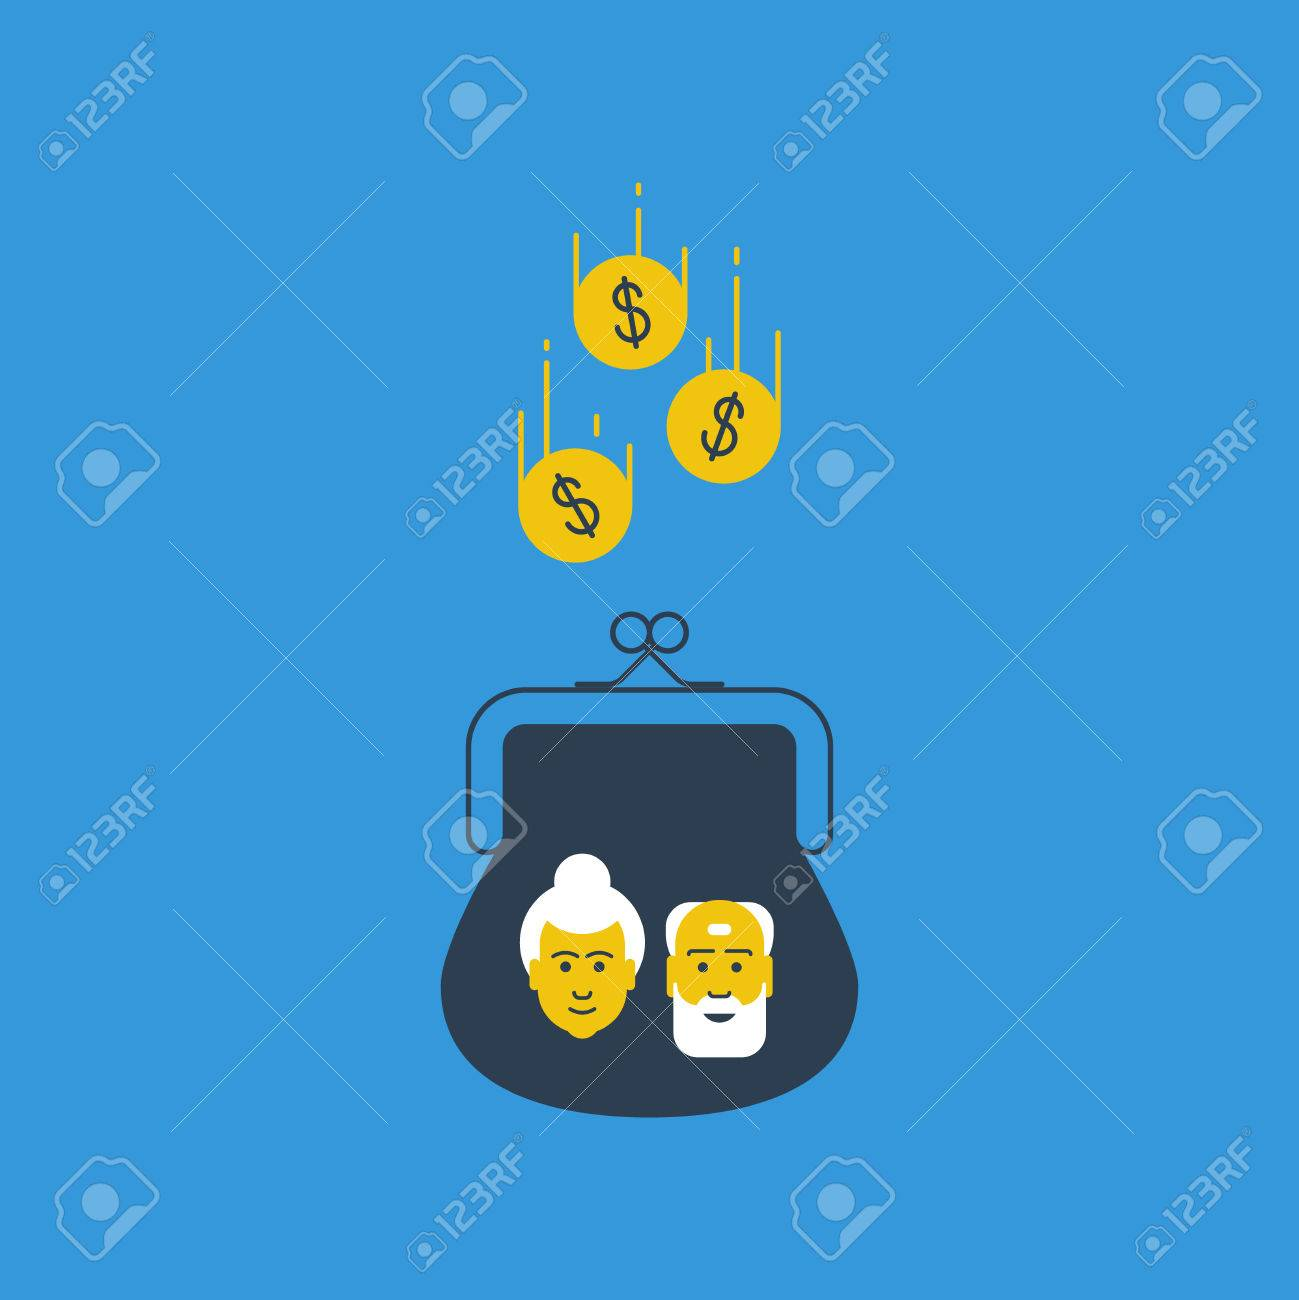 Pension savings. Bank account interest. Future thinking. Wealthy aged couple. - 49711835